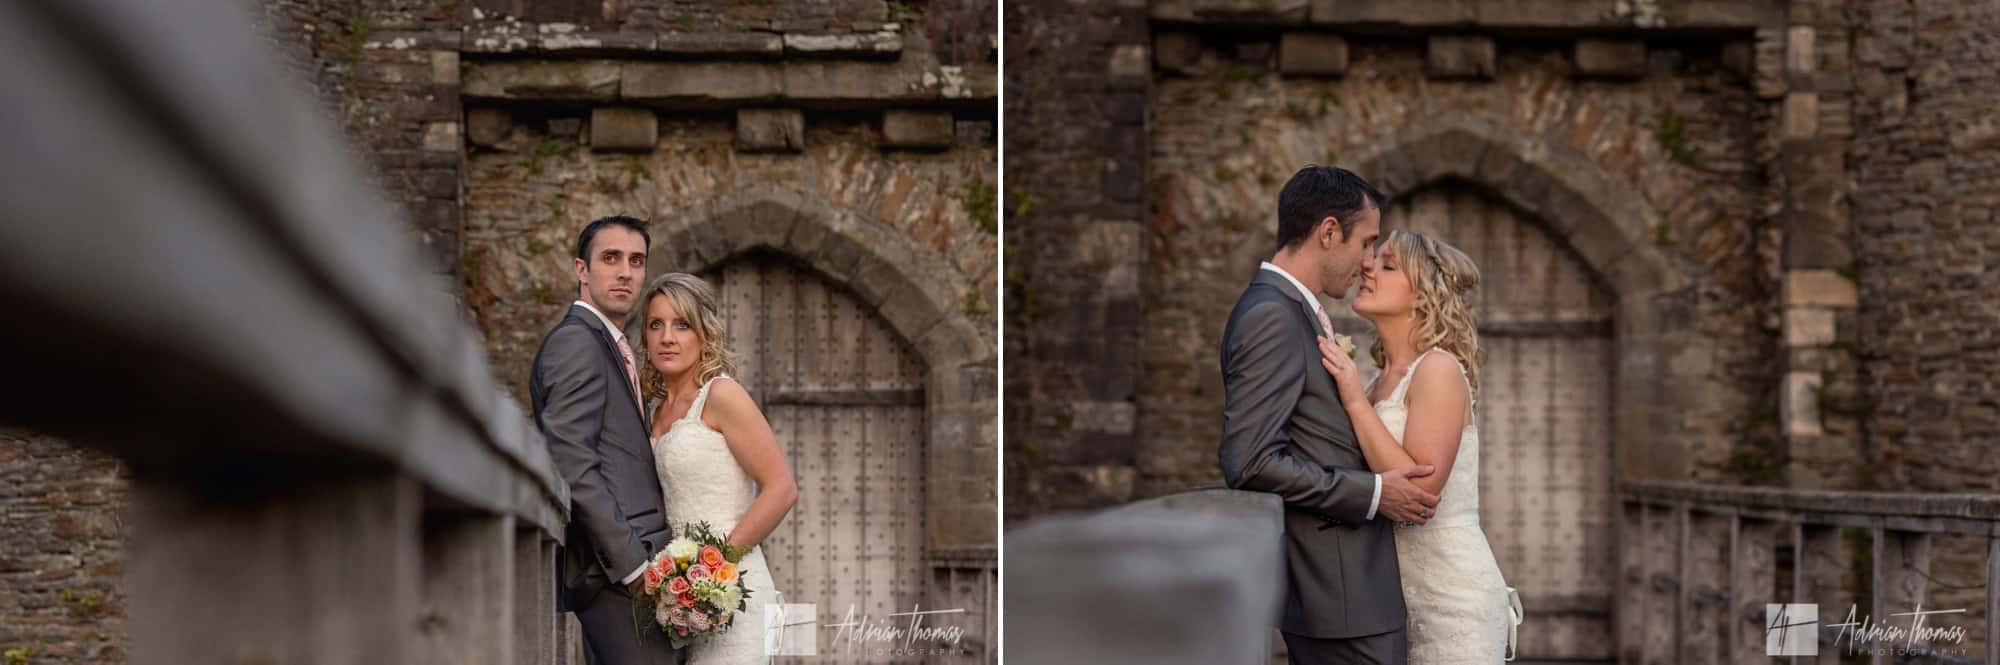 077 Caerphilly Castle Wedding